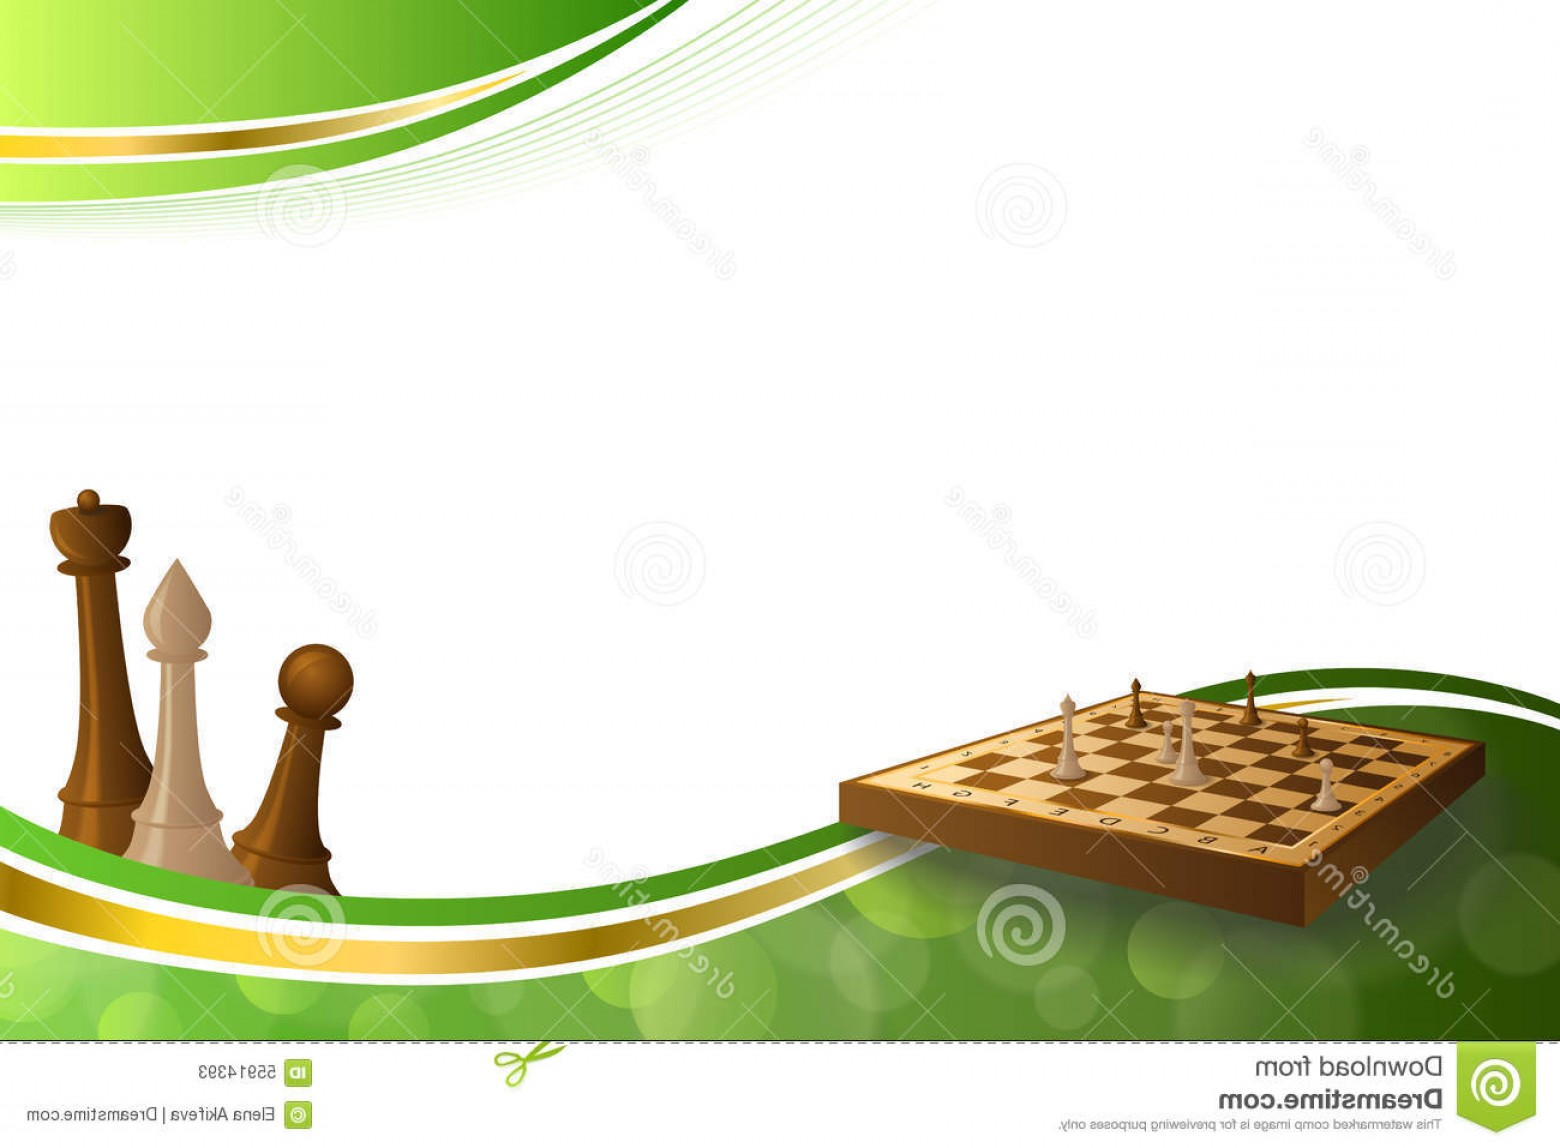 Chess Vector Background: Stock Illustration Background Abstract Green Gold Chess Game Brown Beige Board Figures Illustration Vector Image